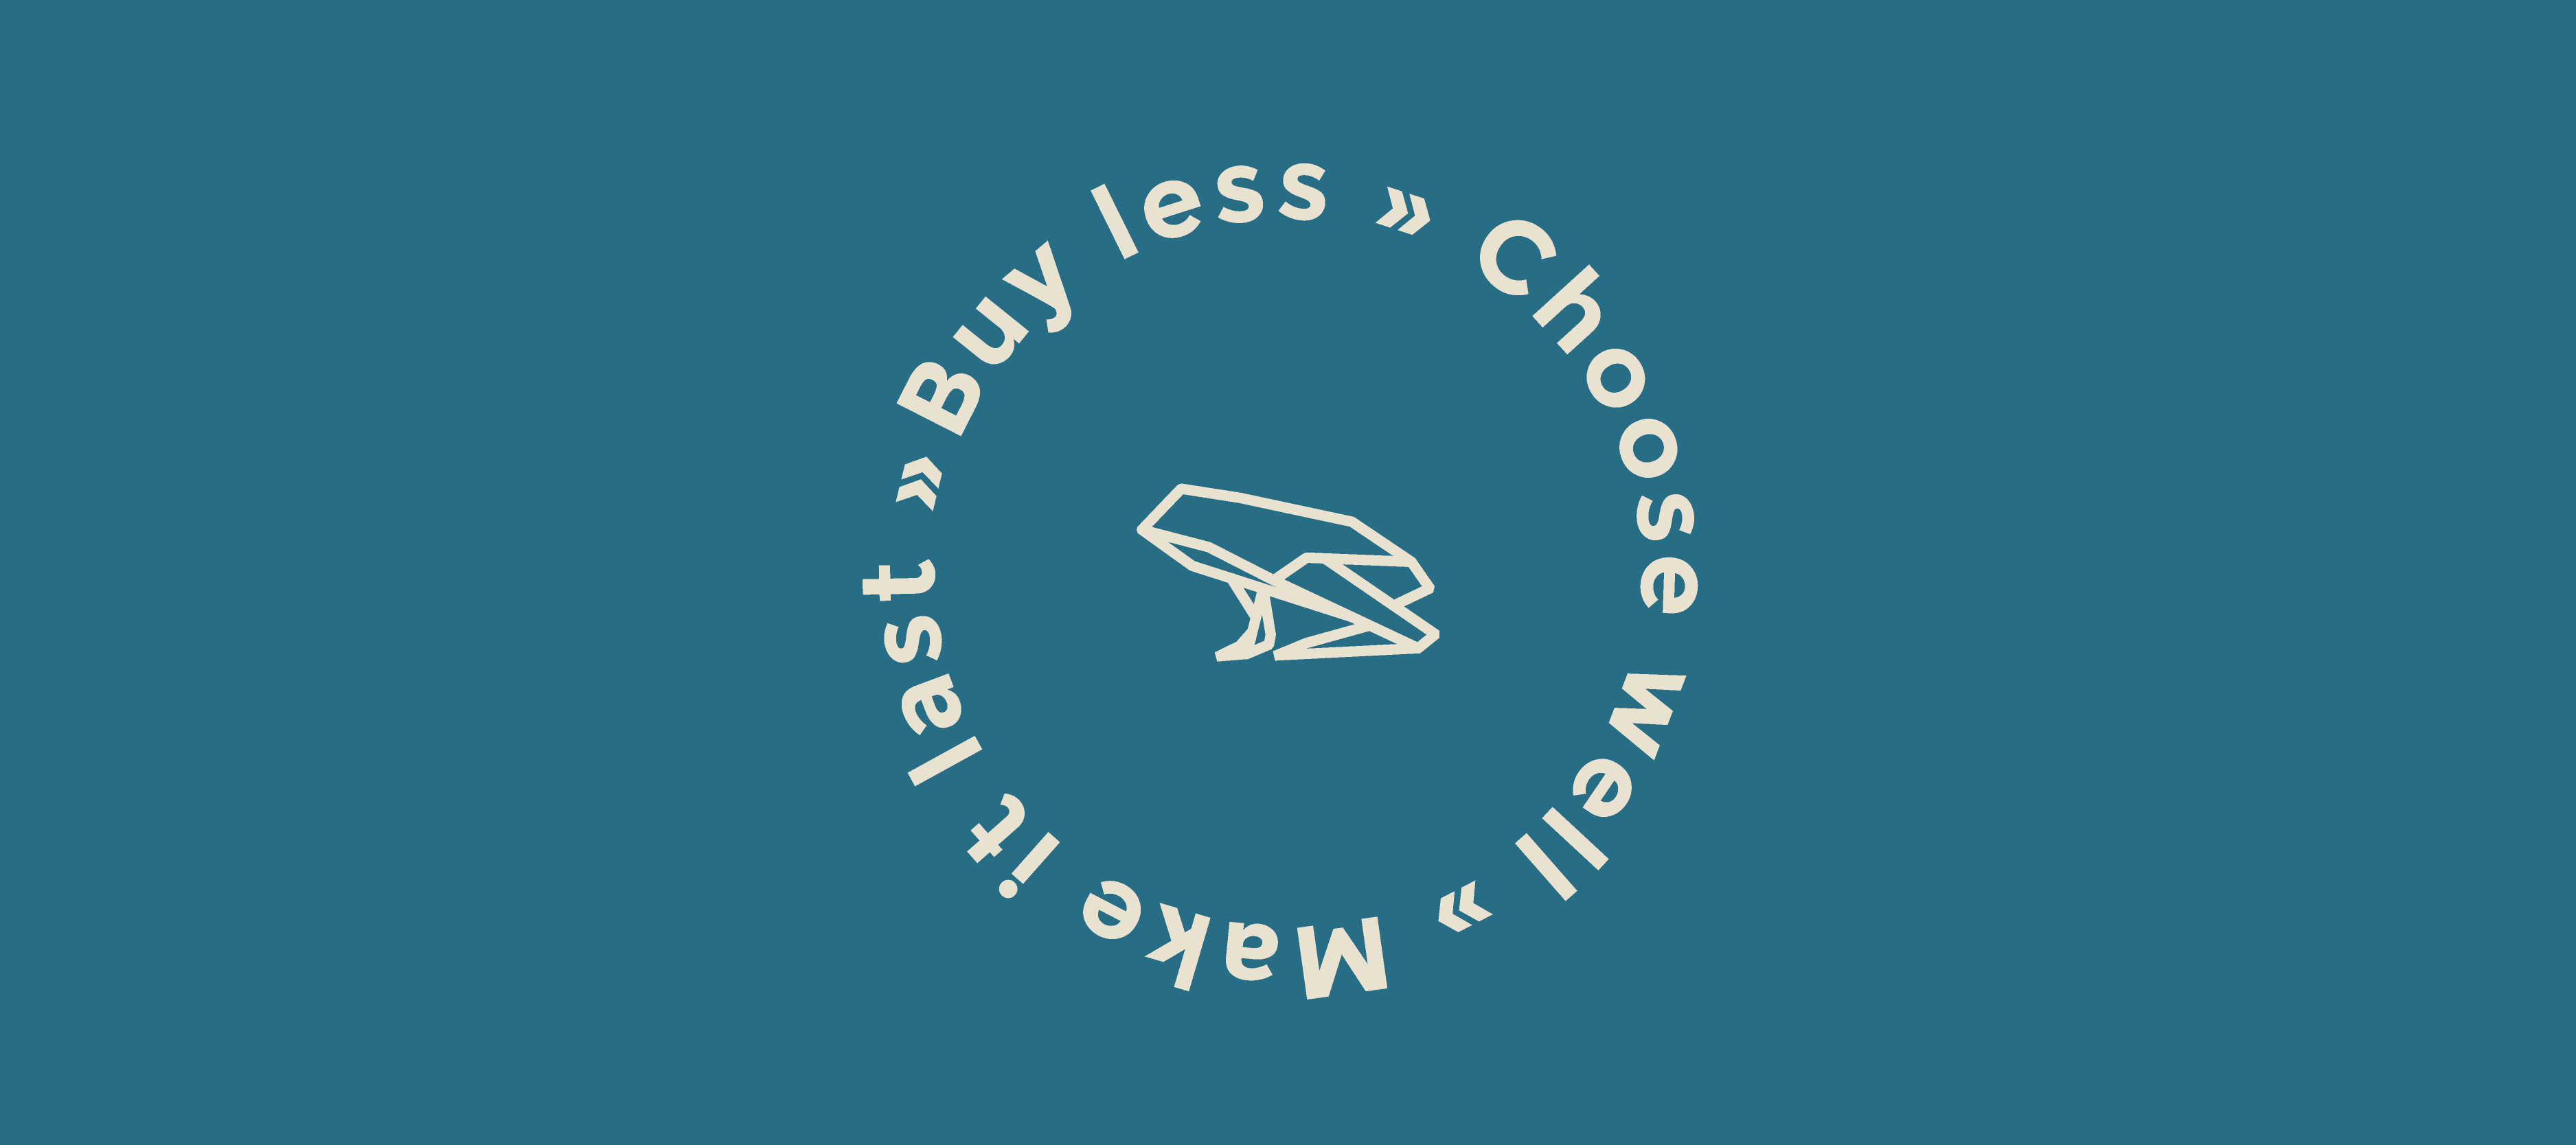 Buy less - choose well - make it last #wearnepra